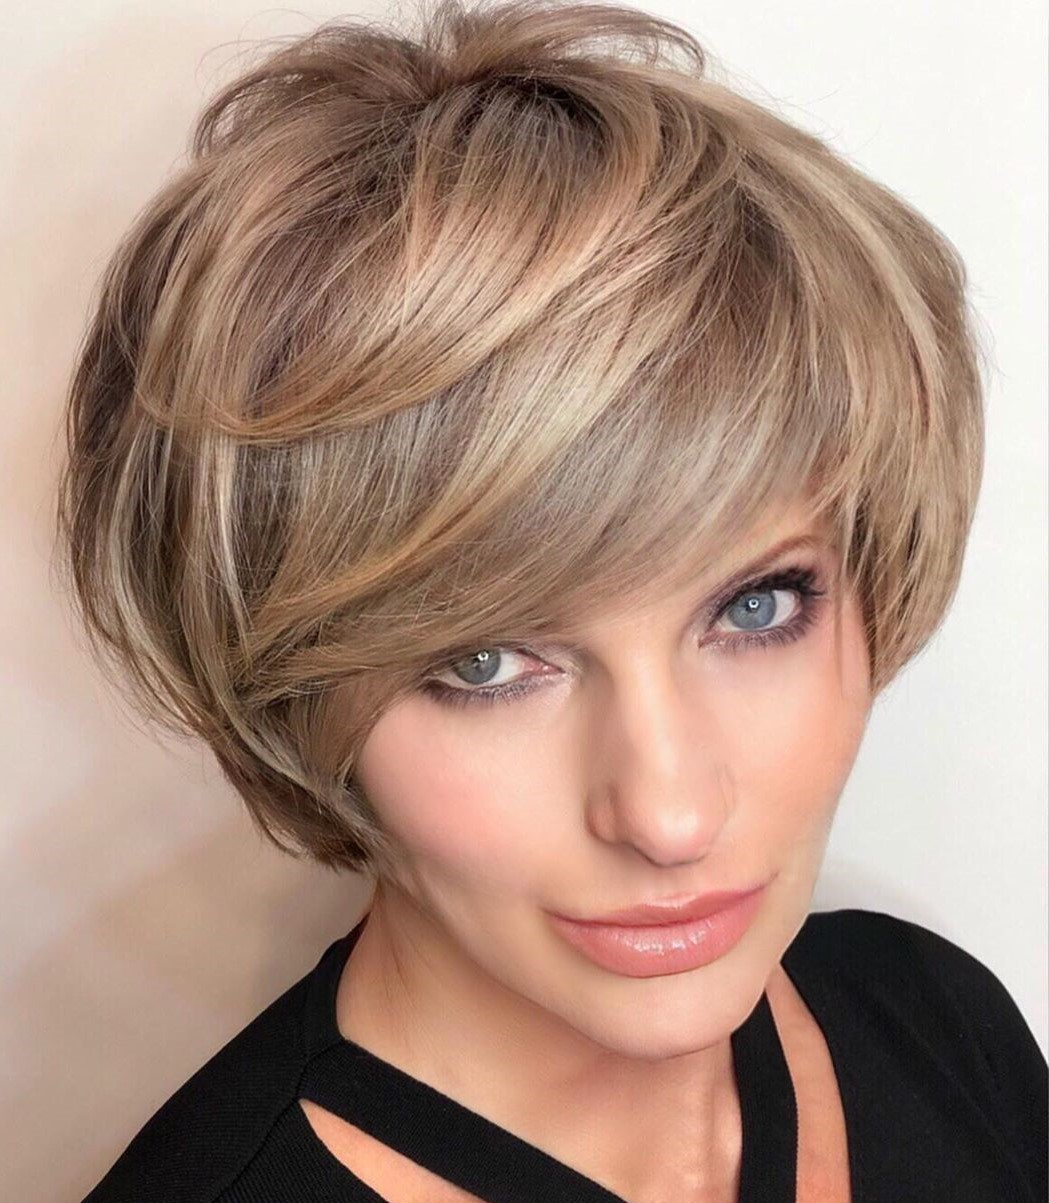 Short Layered Haircut with Thick Side Bangs